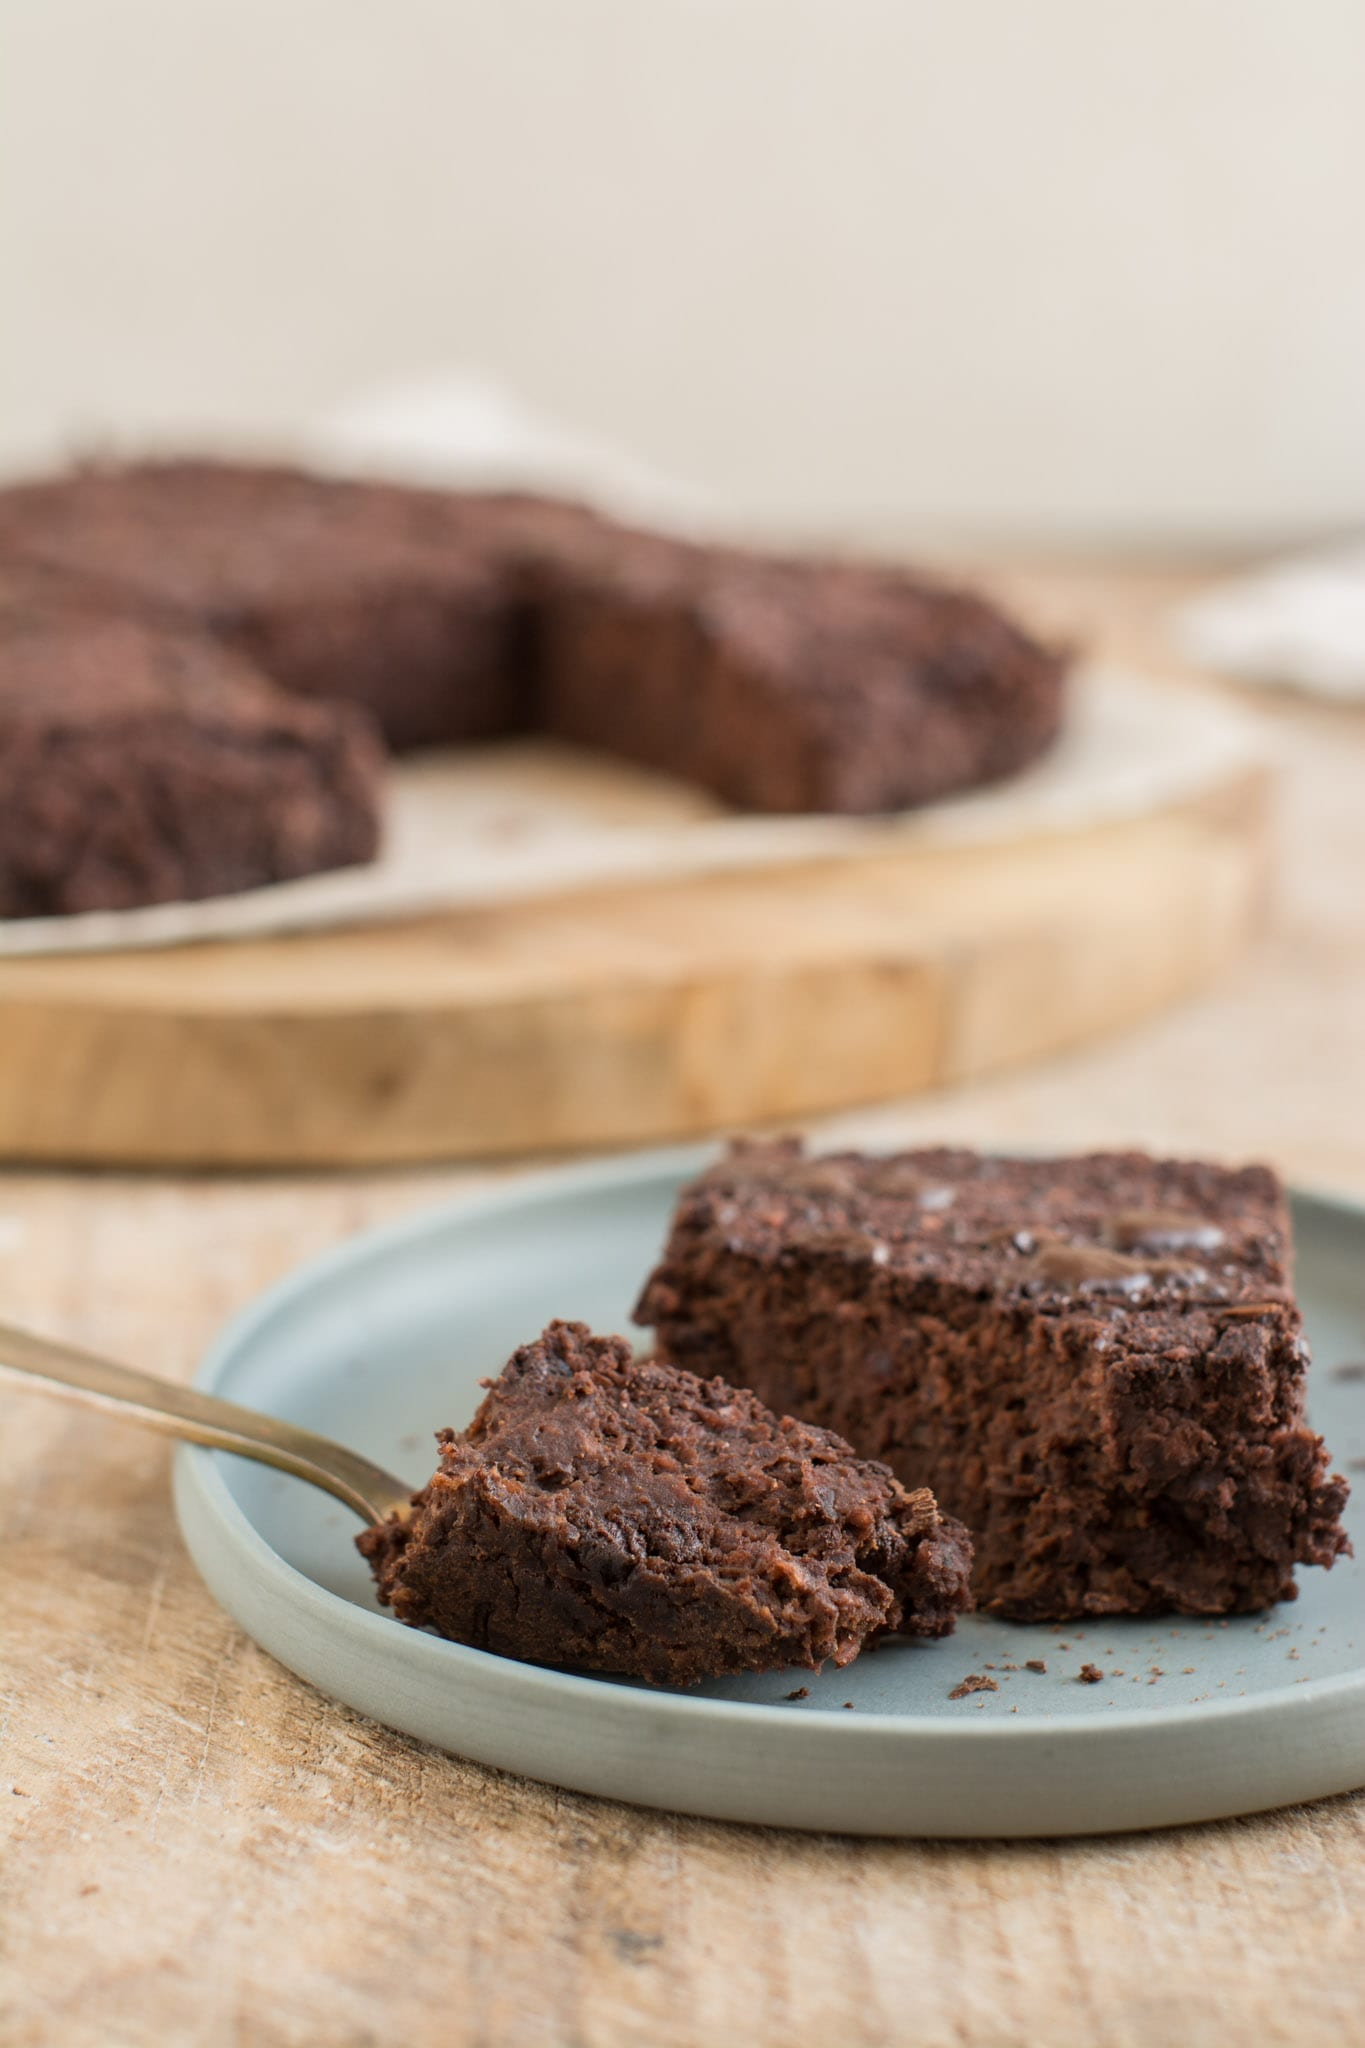 Soft and fudgy whole food plant-based chocolate beet brownies that are gluten-free and exceptionally easy to make. You'll only need a food processor and 10 minutes of your time.